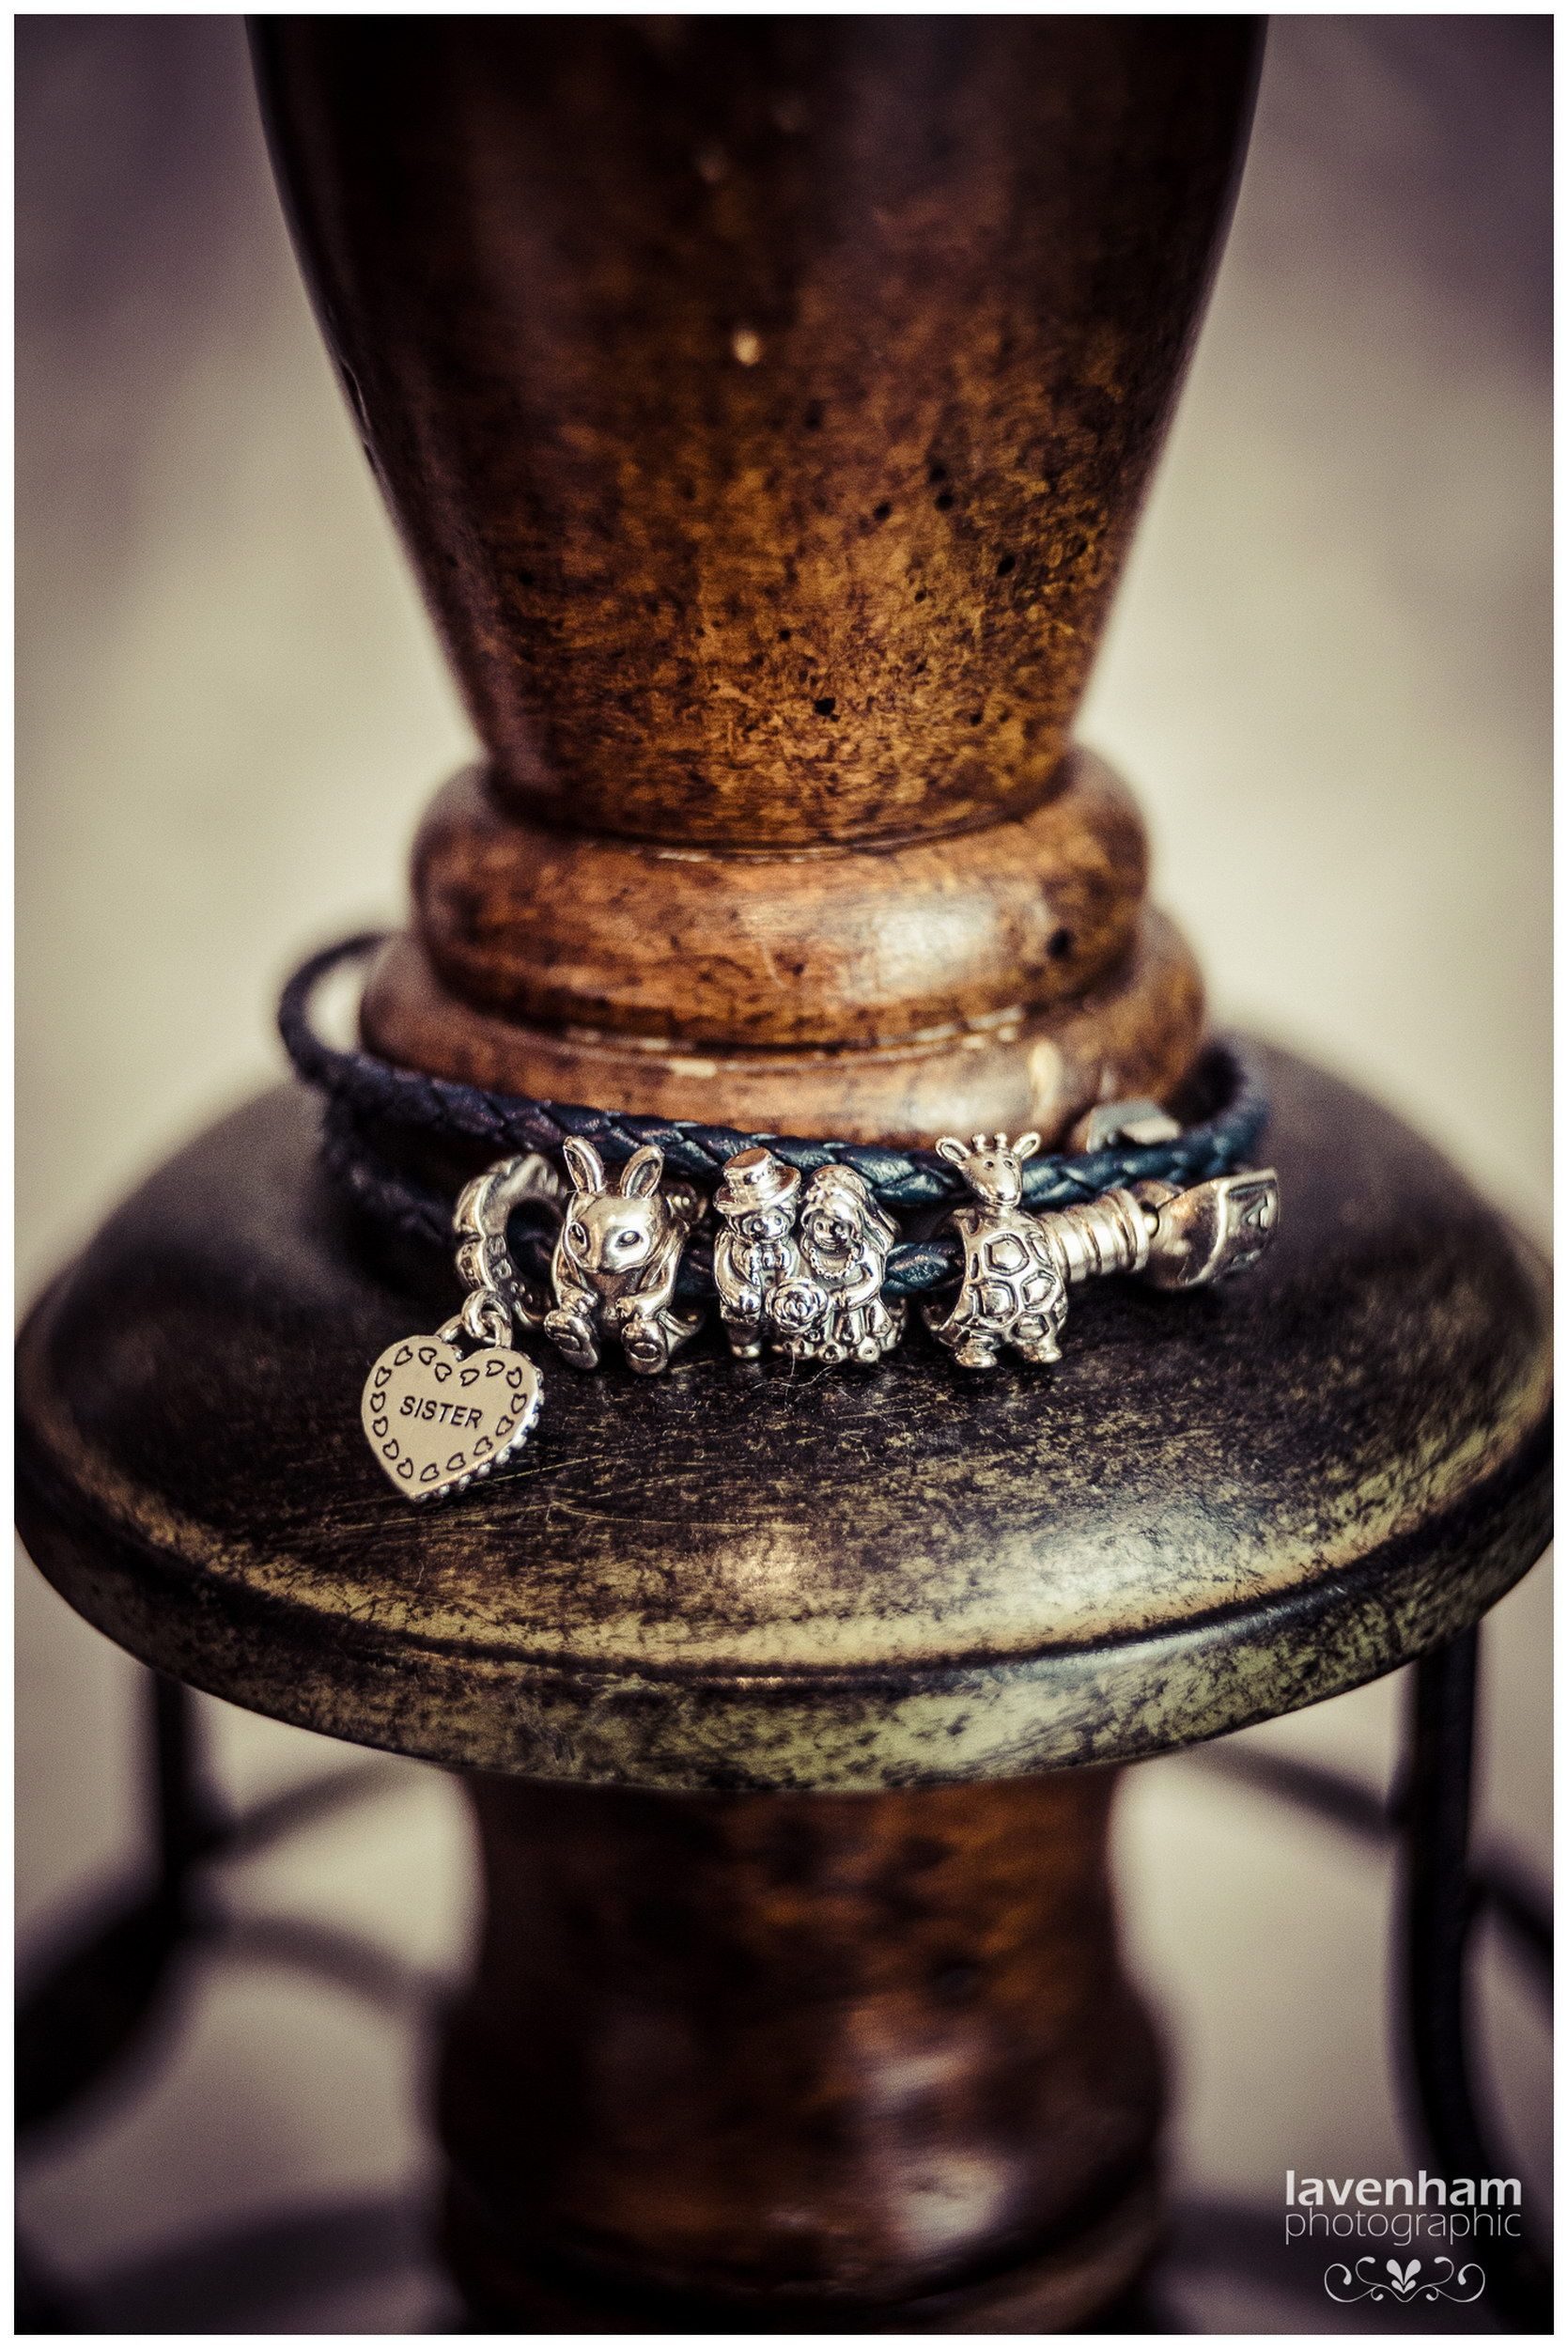 Bride's Pandora Bracelet, gift from her sister, Easter wedding. Charms include Sister, Easter bunny, bride and groom. Photographed on wooden dressmaker's mannequin